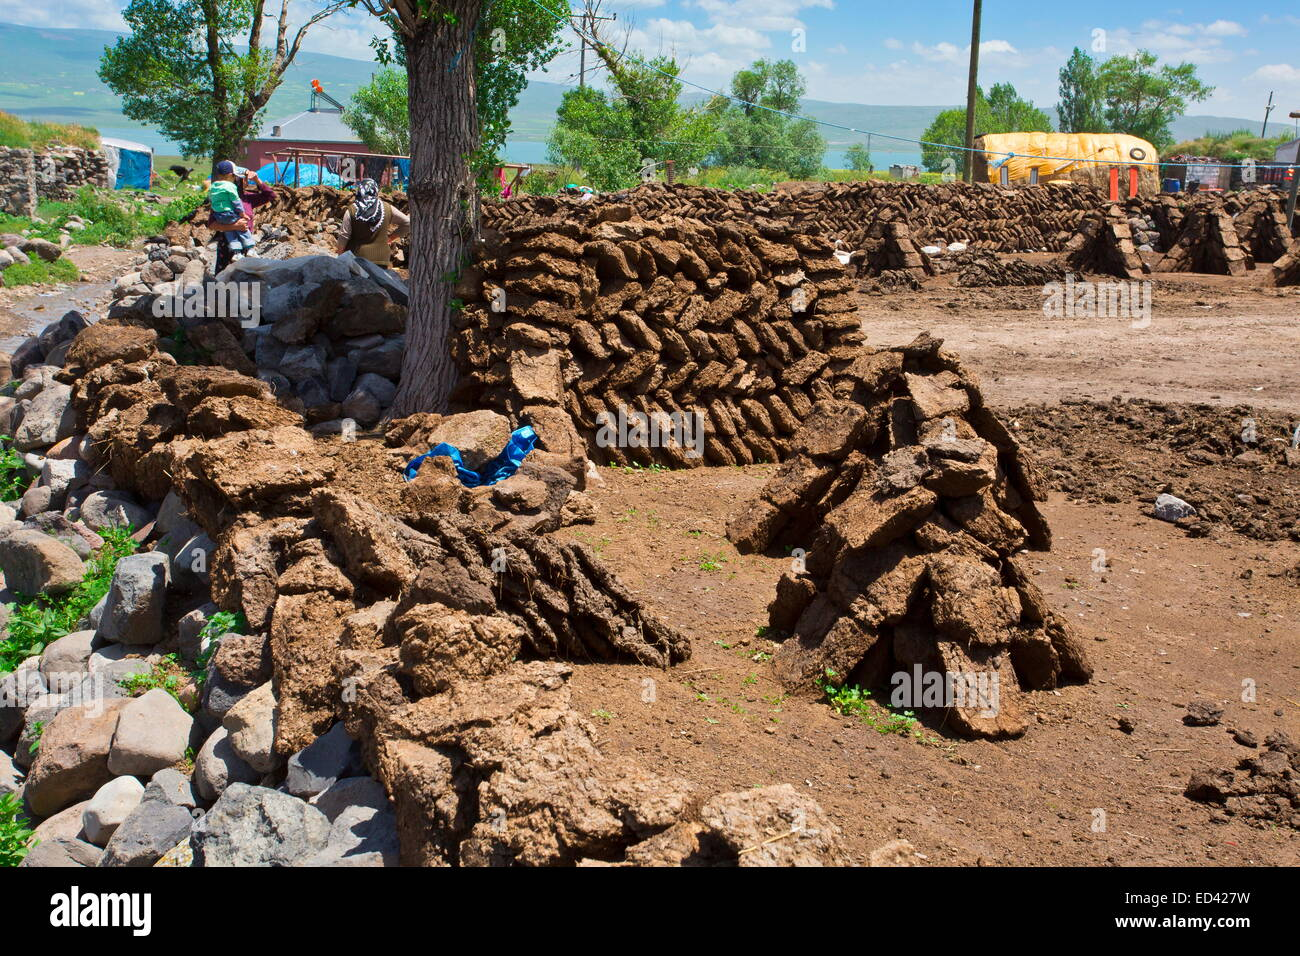 Drying manure for fuel In the remote village of Gulyuzu, by Cildir Golu Lake, far eastern Turkey - Stock Image